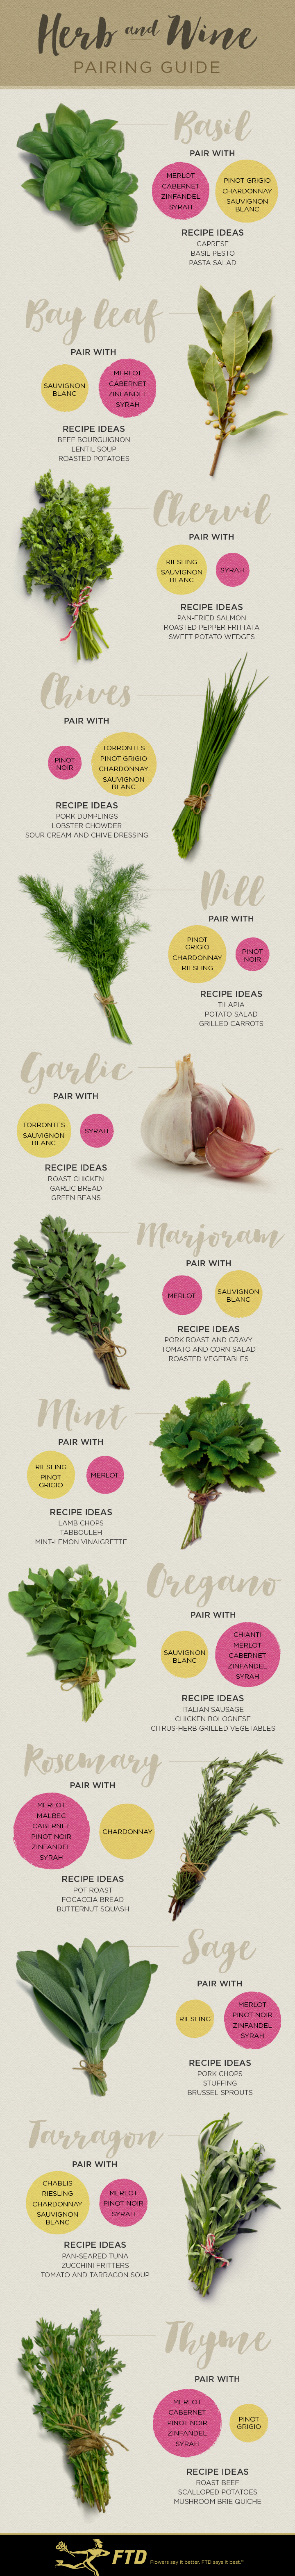 herb-and-wine-pairing-guide-ftd